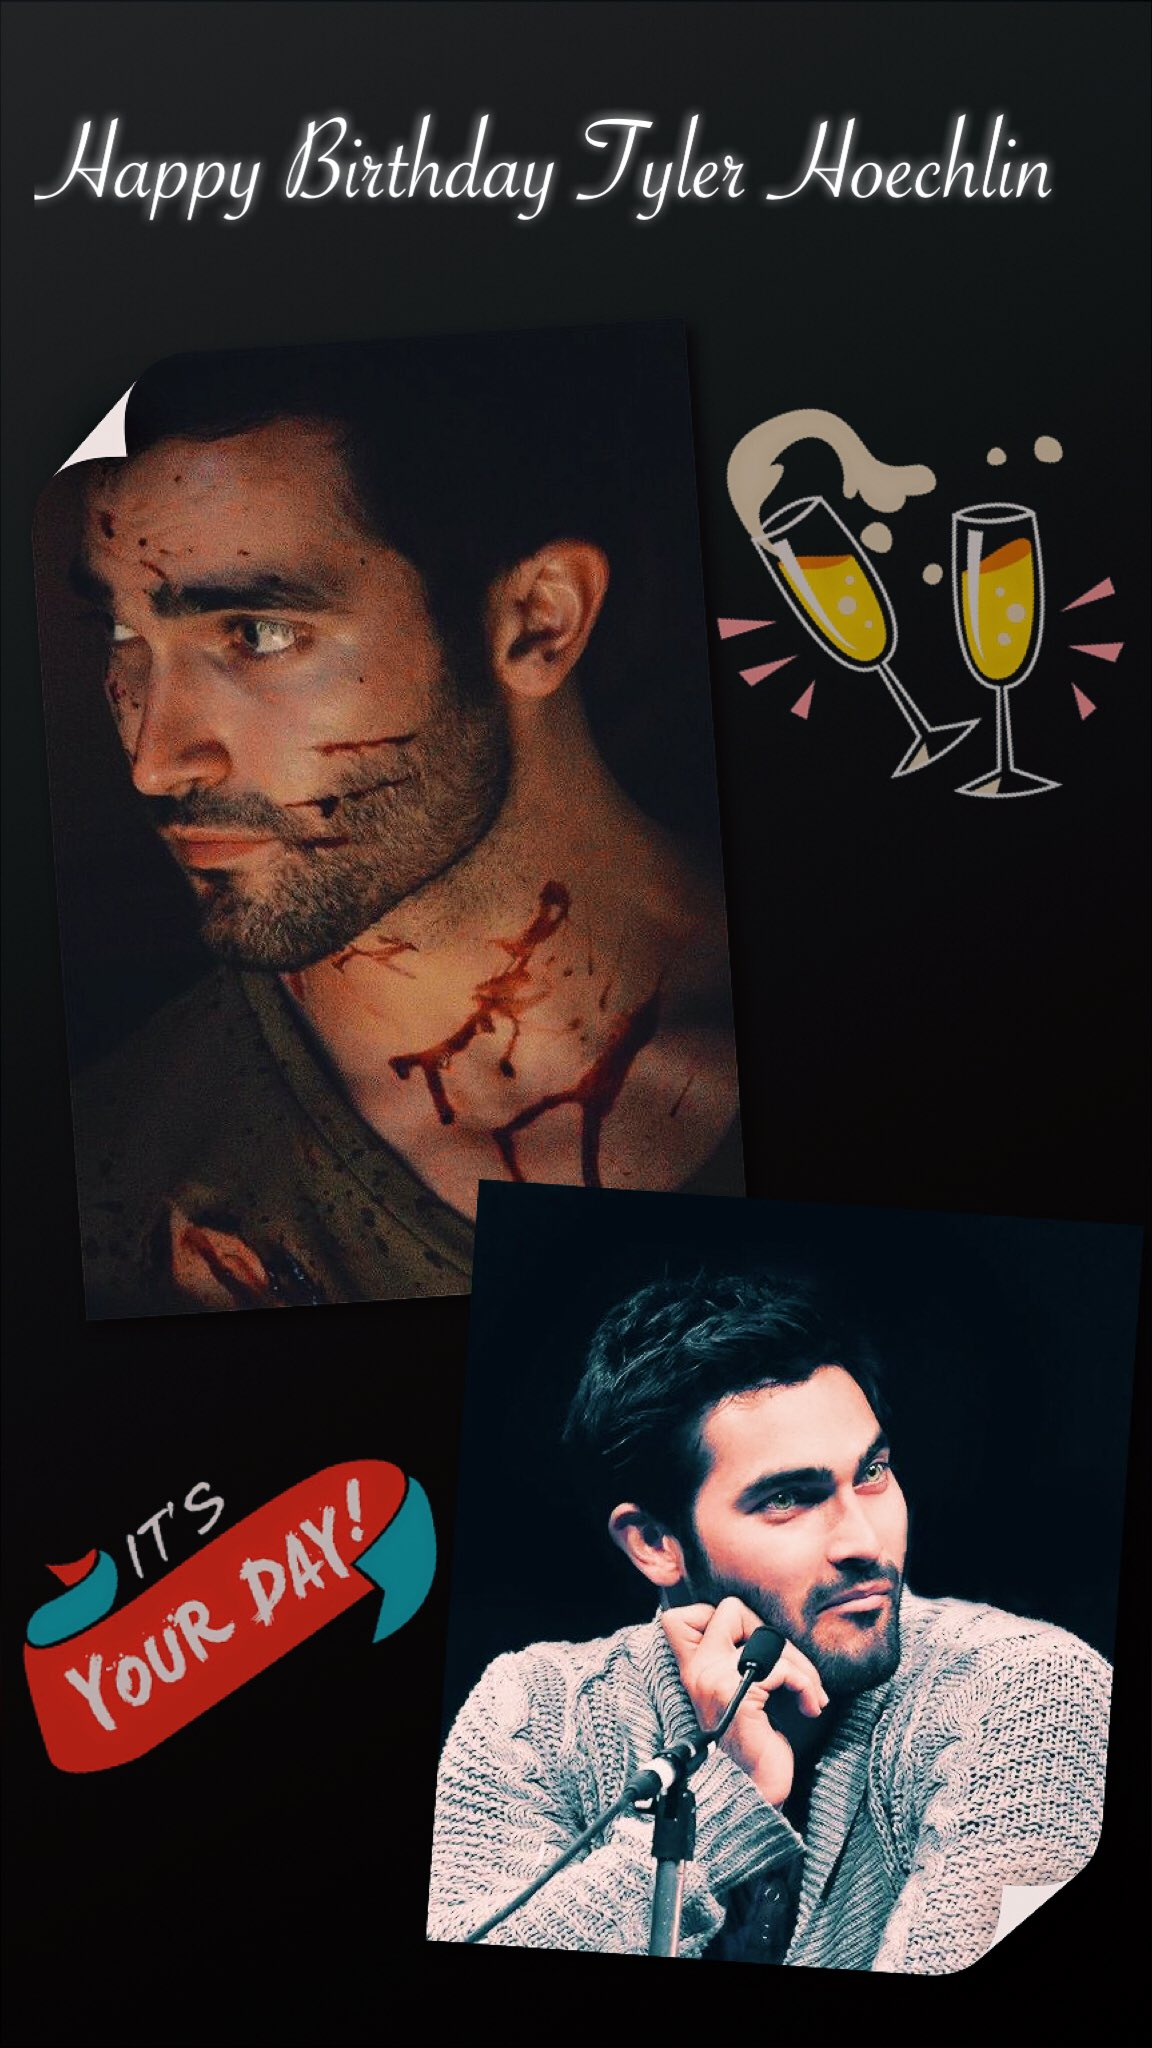 Happy Birthday Tyler Hoechlin !!